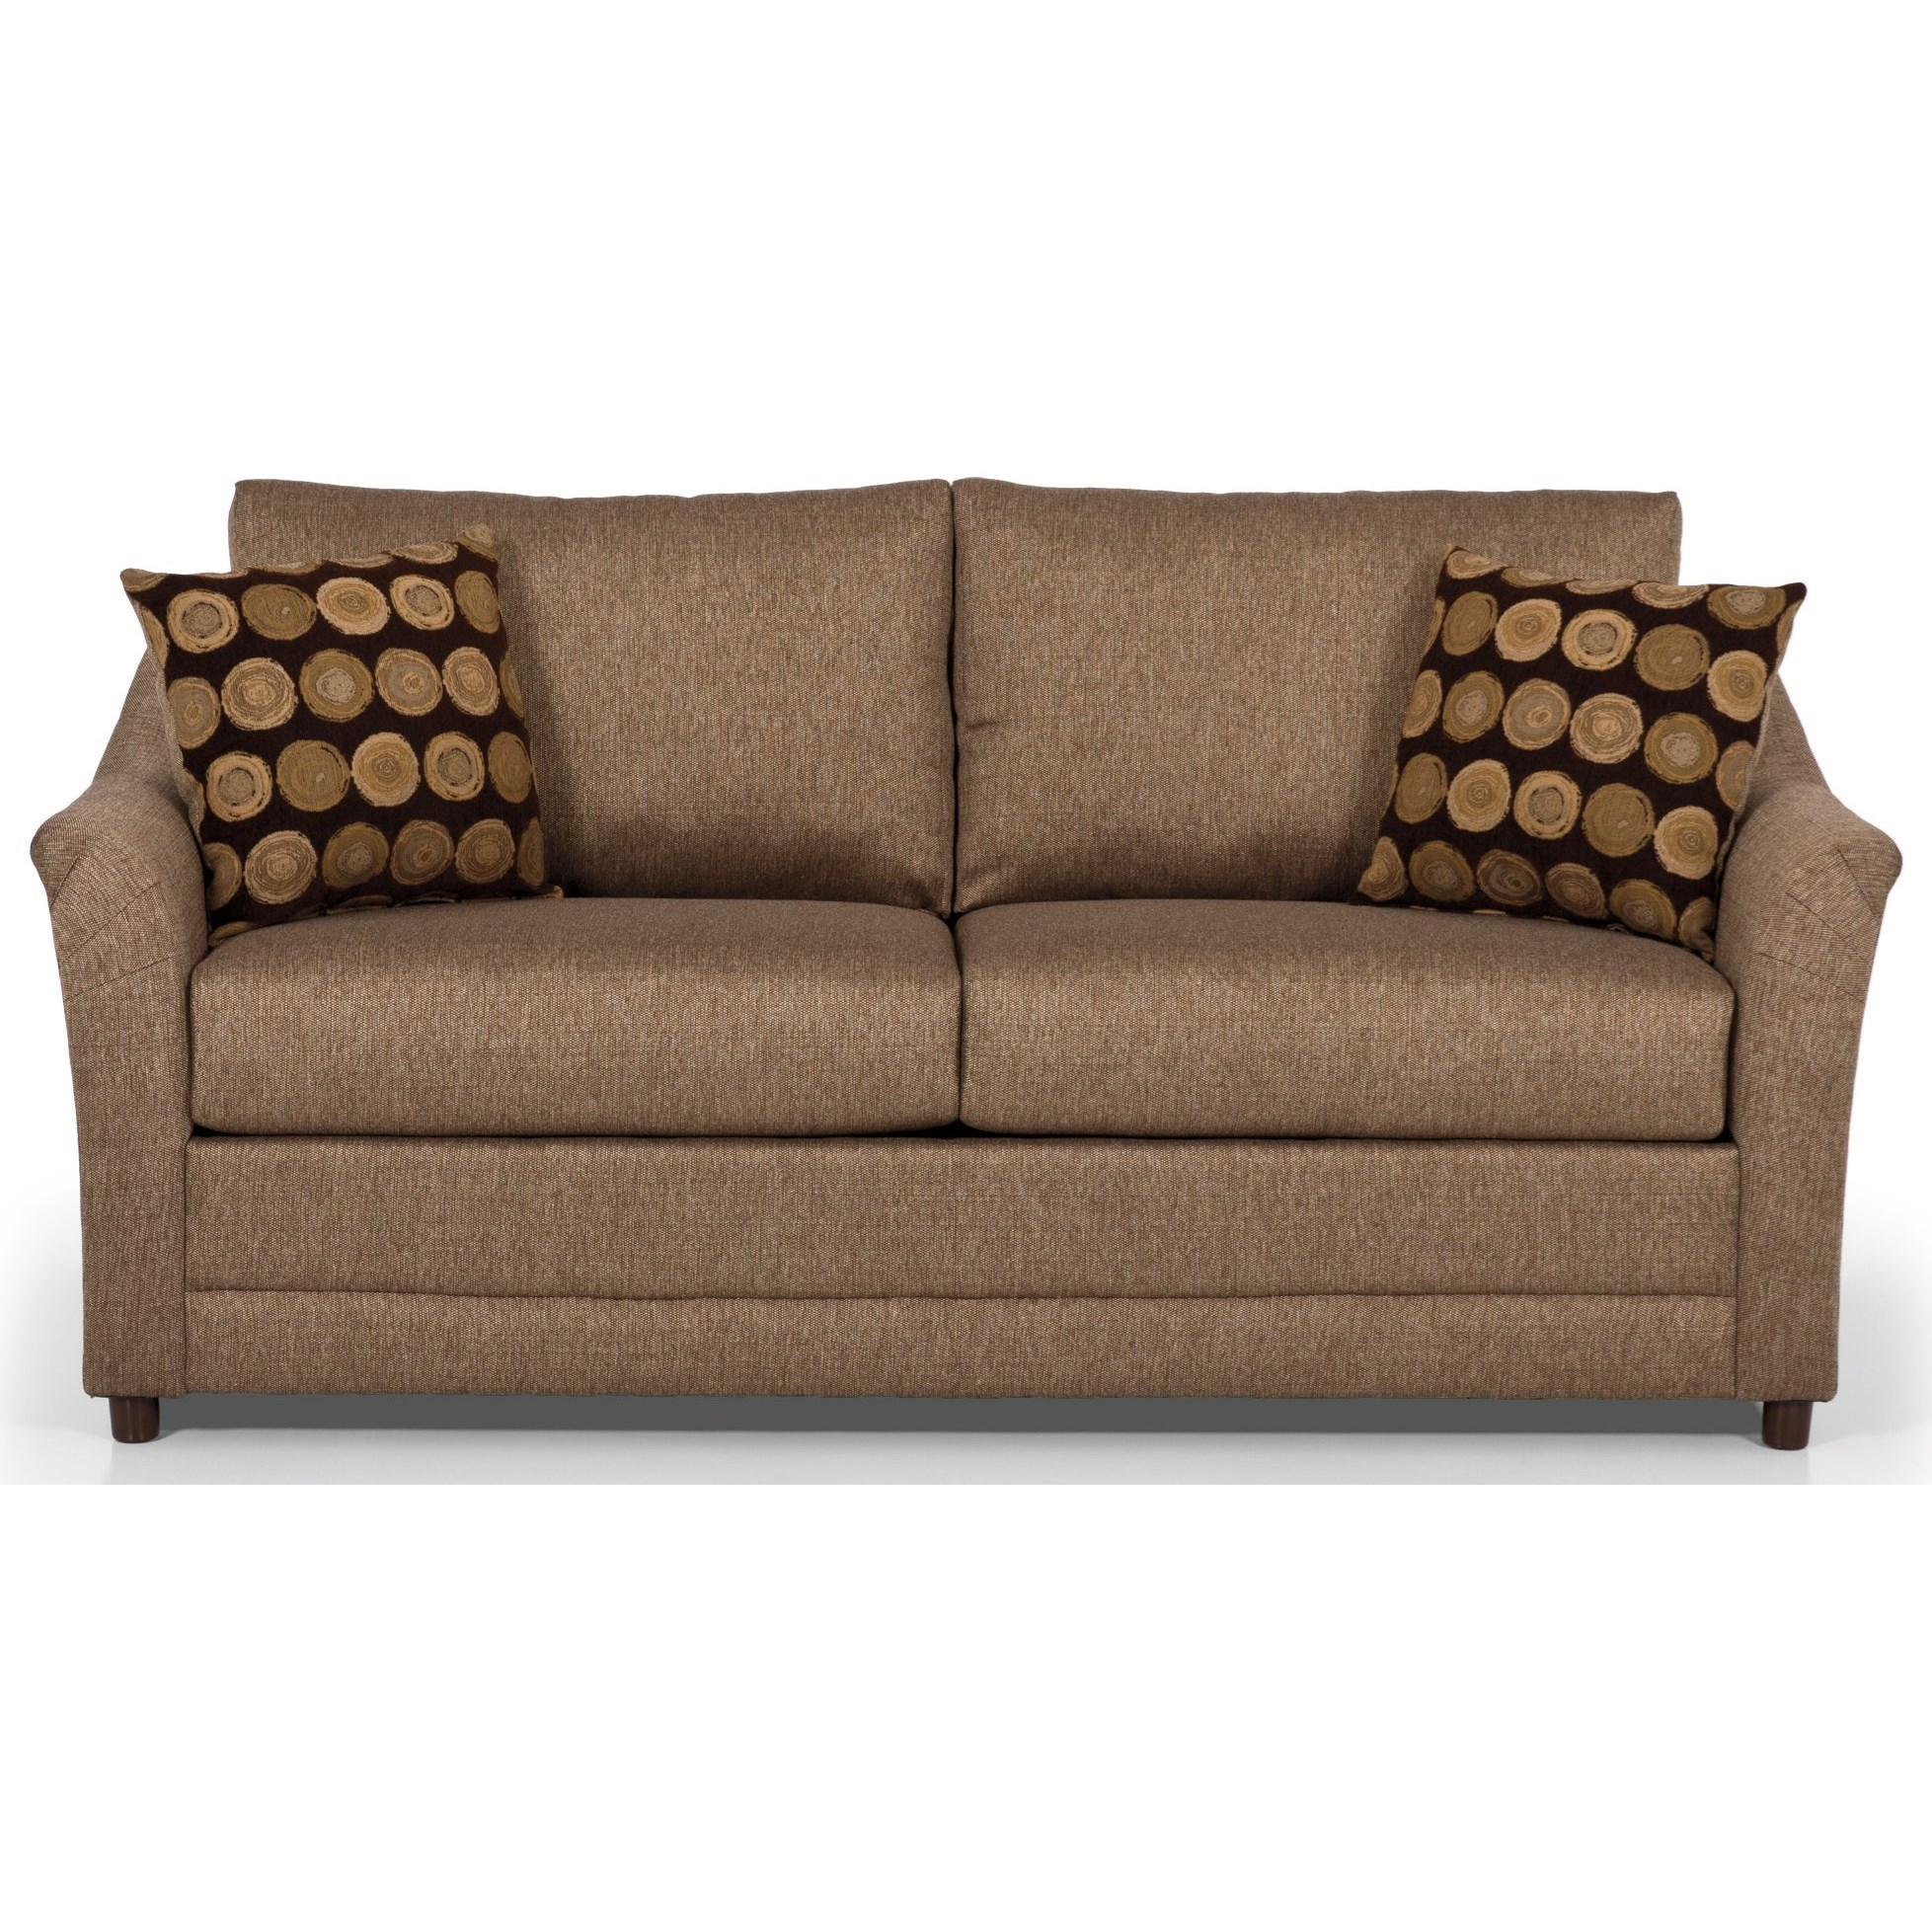 201 Full Sofa Sleeper by Stanton at Wilson's Furniture